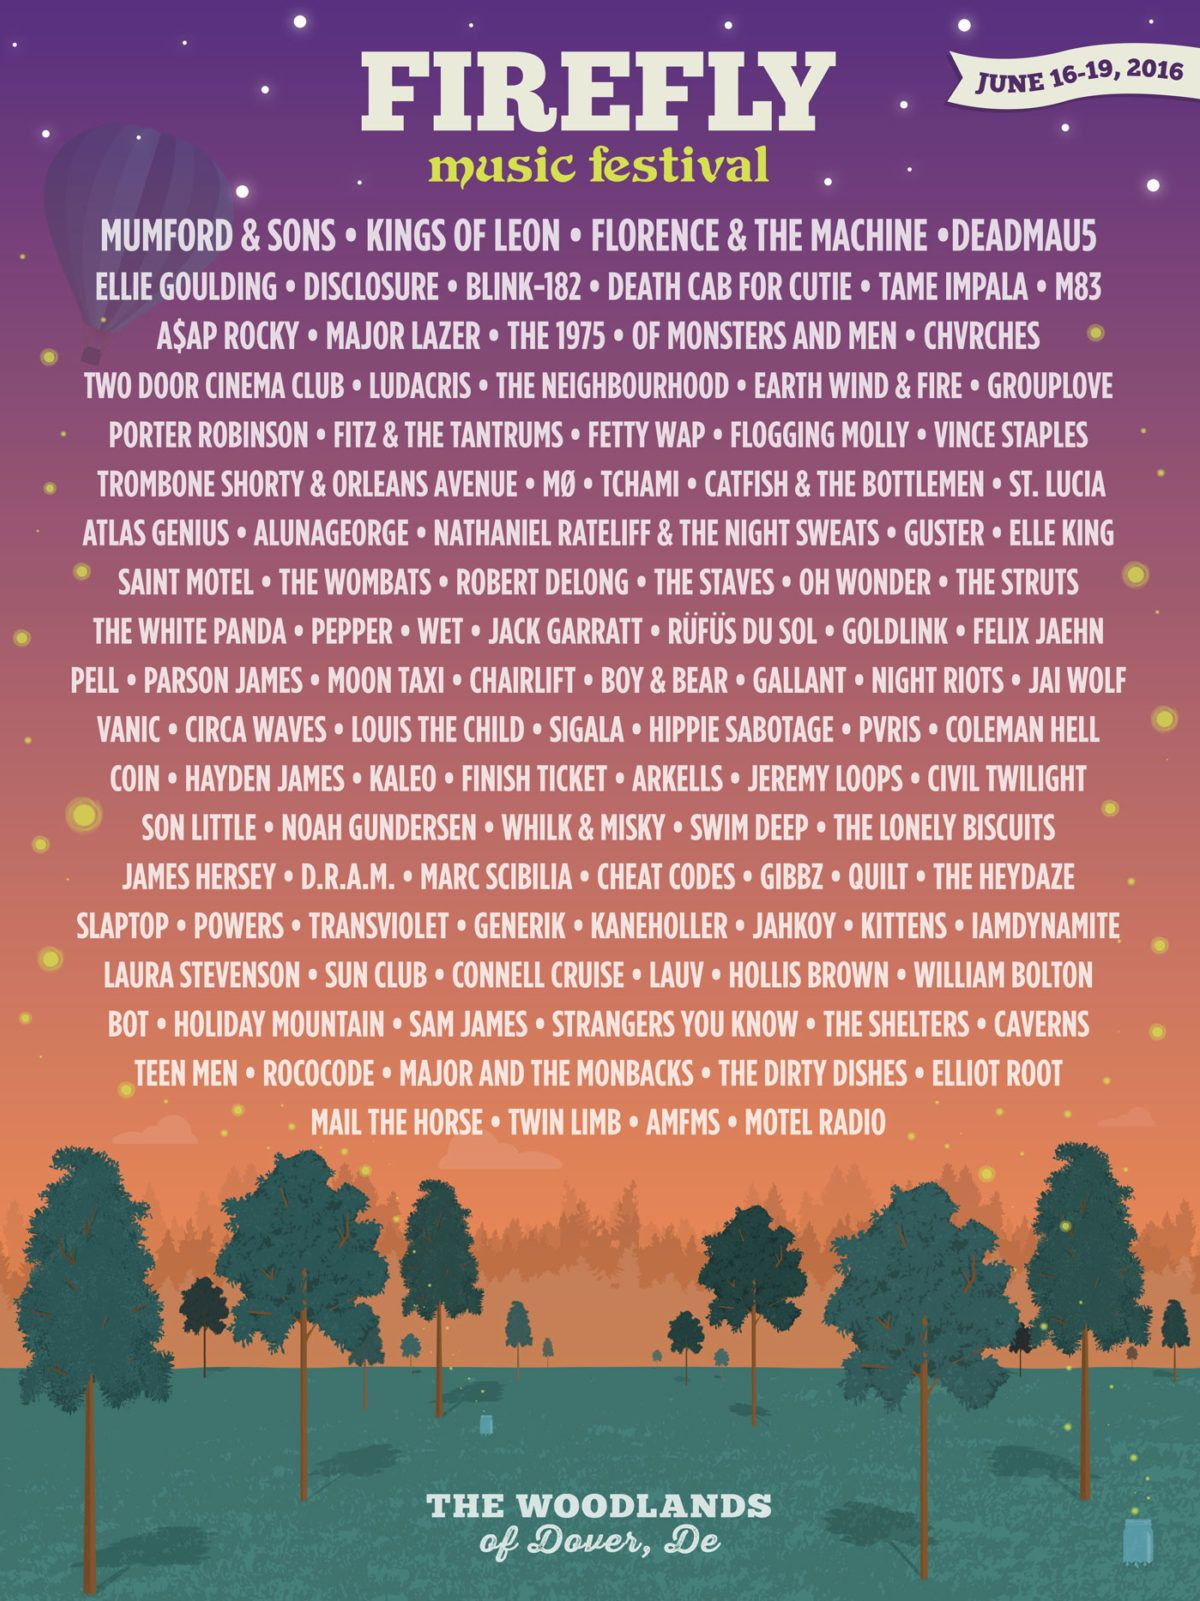 Firefly Festival Lineup Announced for 2016